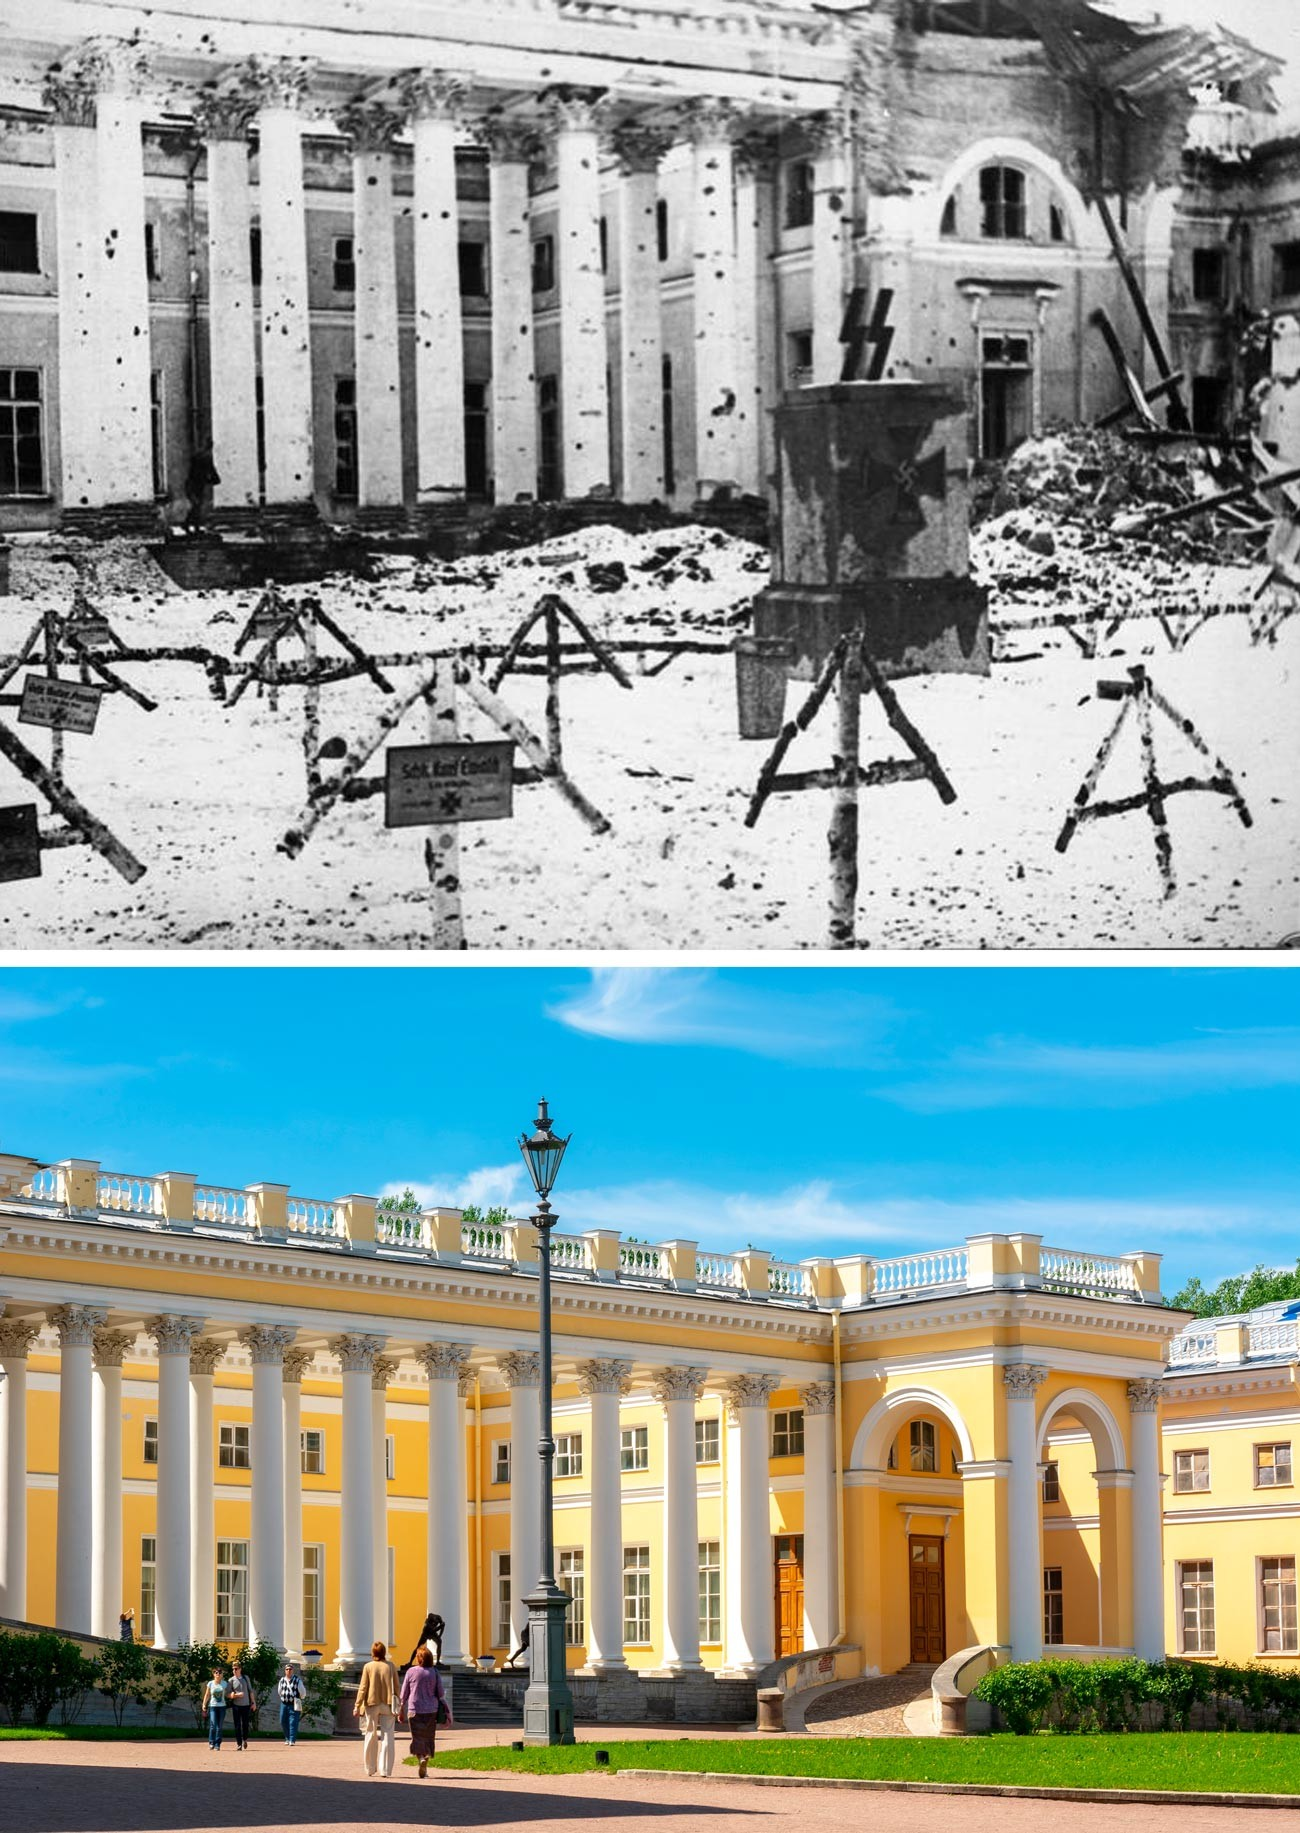 The grounds in front of the Alexander Palace in Tsarskoe Selo were used by the Germans as a cemetery